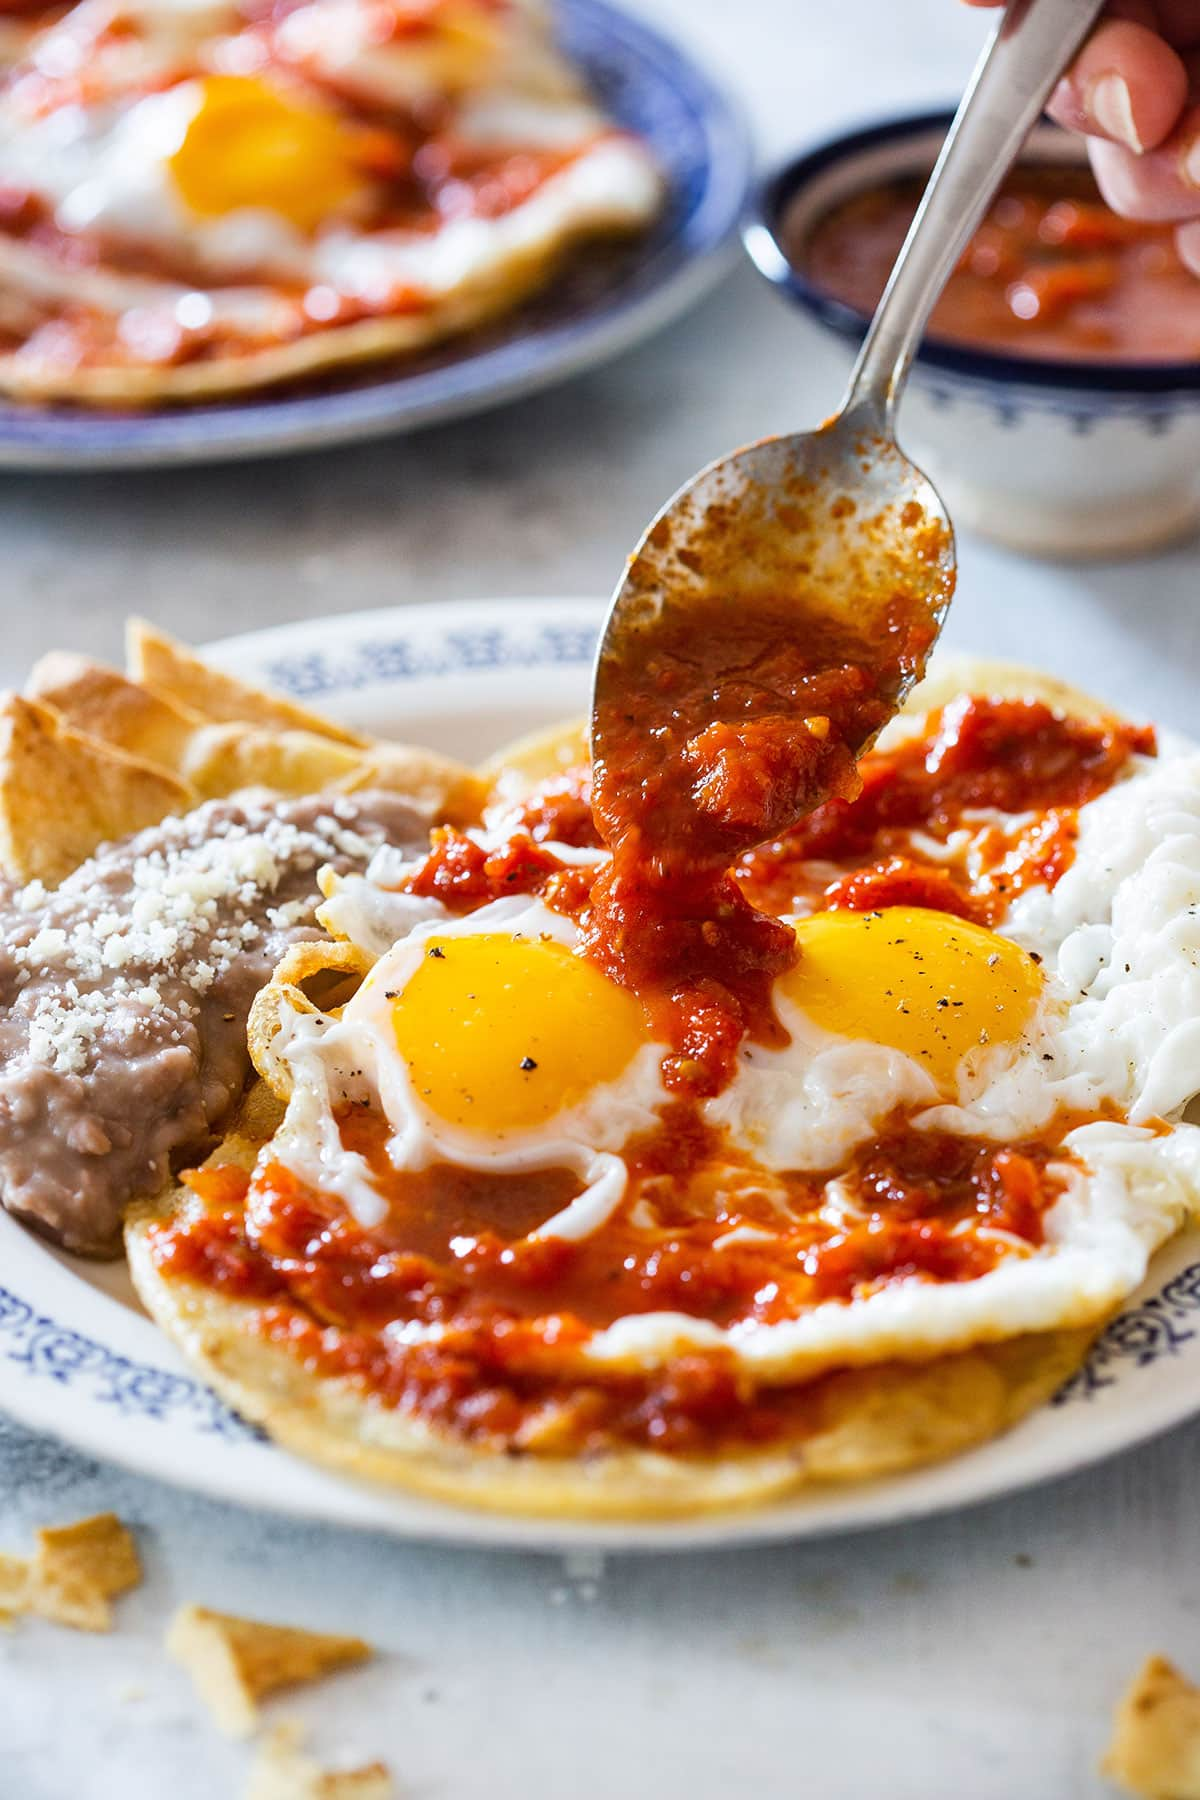 Huevos rancheros being drizzled with salsa.